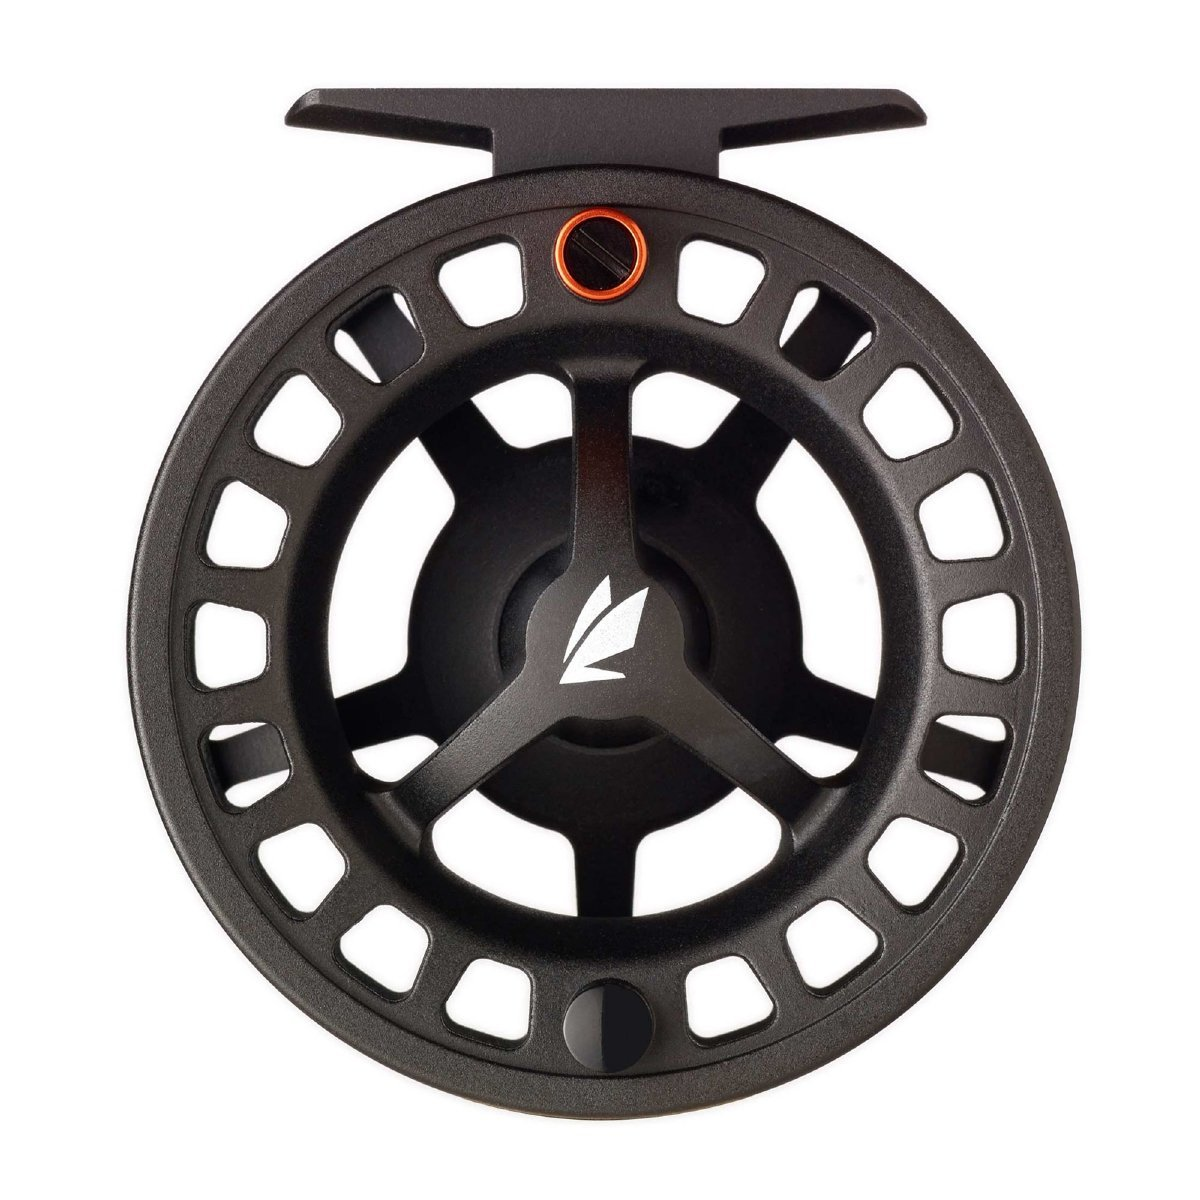 Sage 2200 Fly Fishing Reel